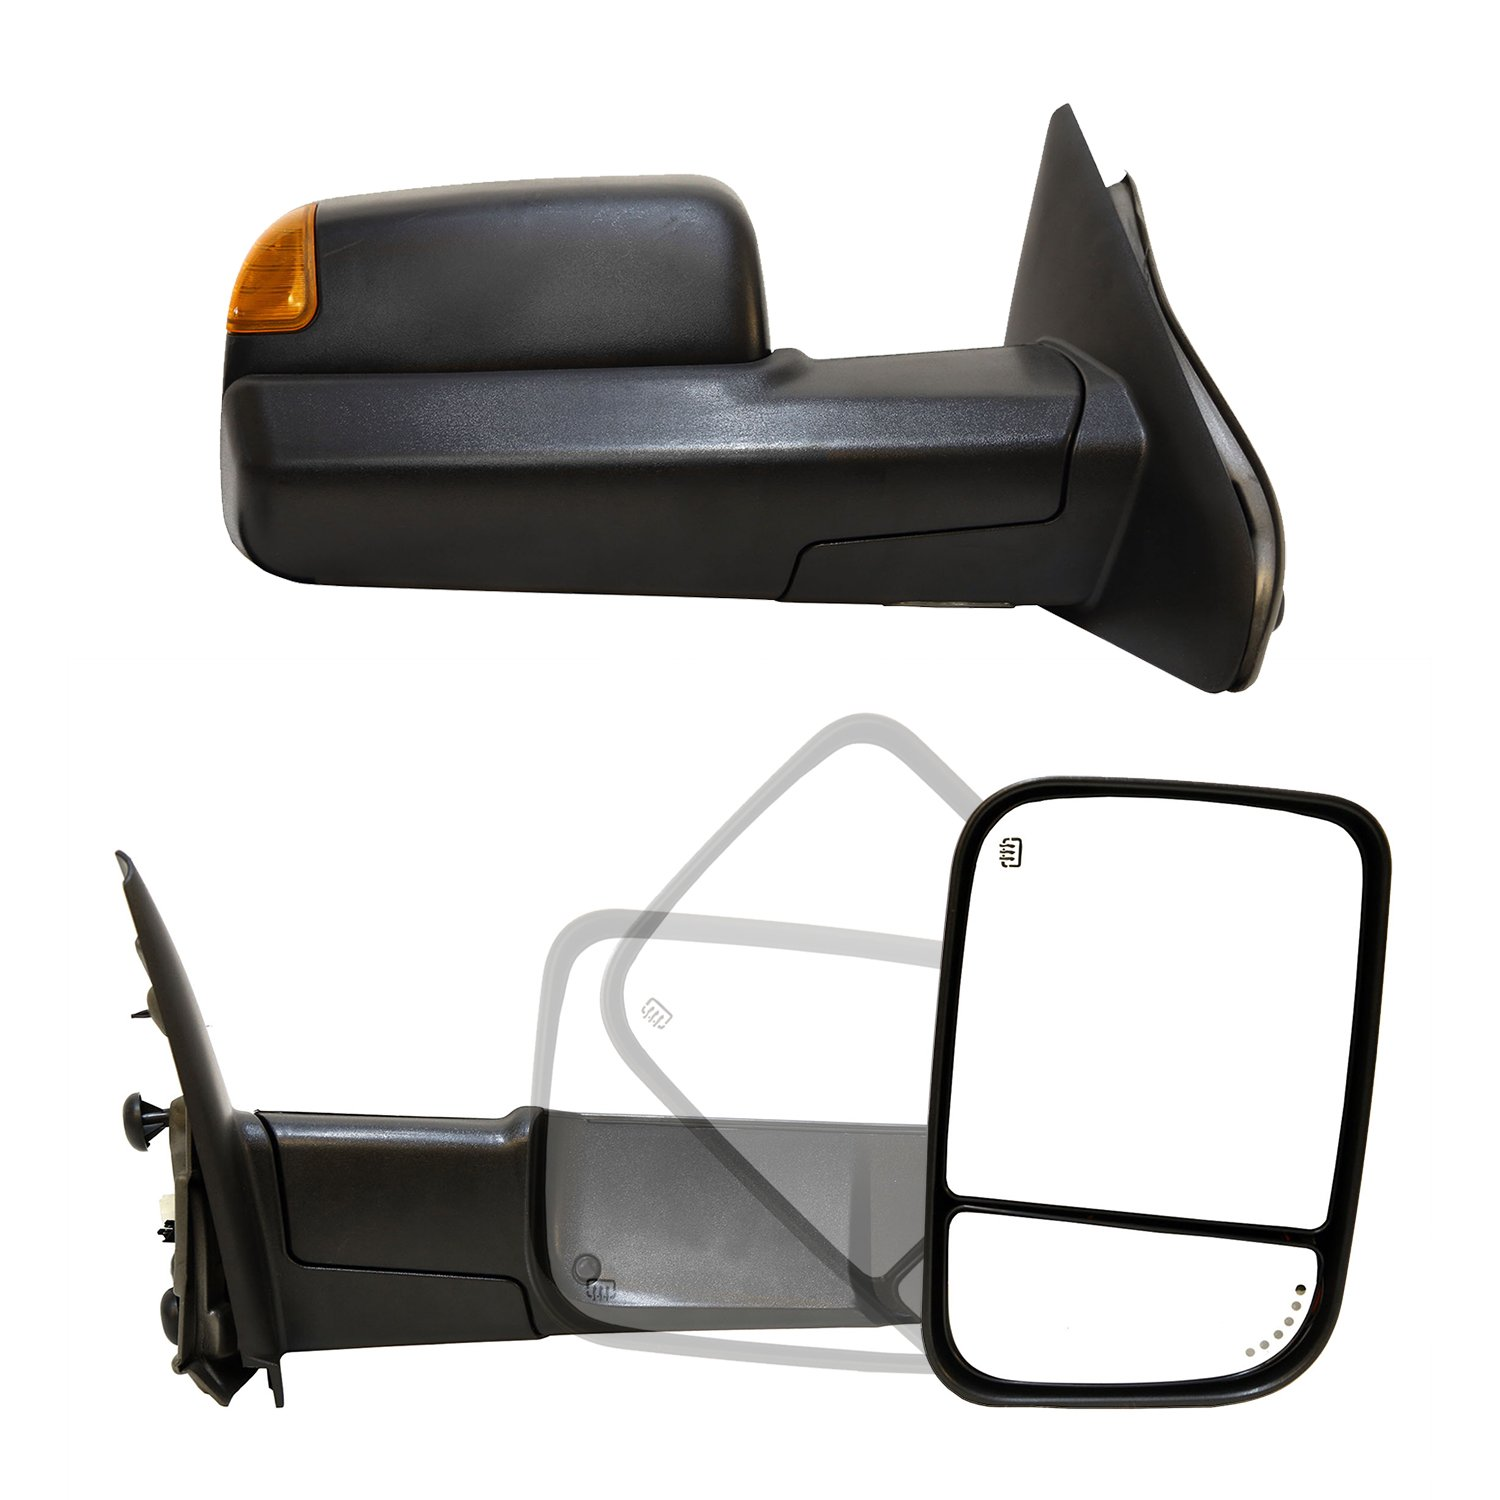 Paragon Towing Mirrors for 2003-08 Dodge Ram 1500/2500/3500 - Powered, Heated, Turn Signals, Puddle Lights - Black Pair Set Paragon Parts